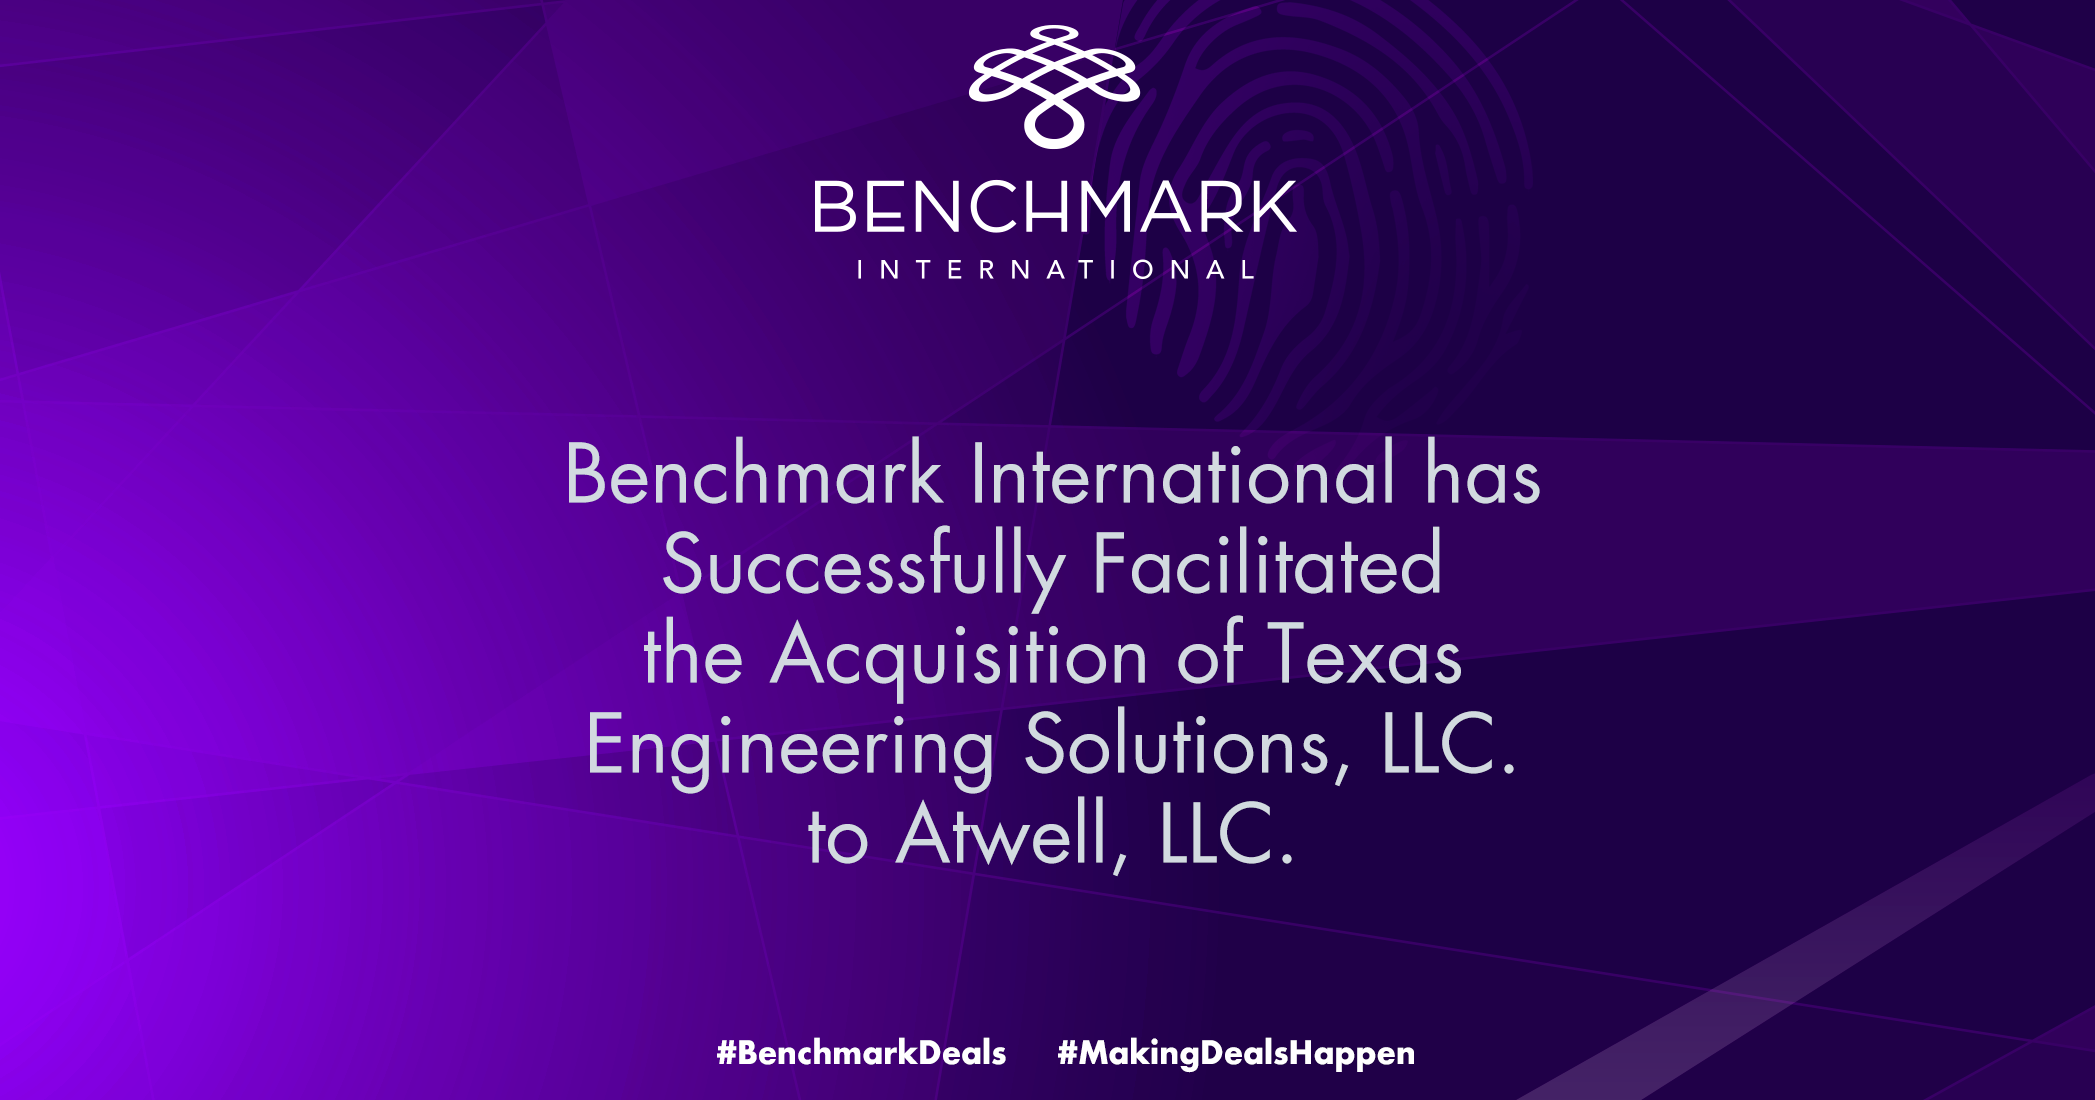 Benchmark International has successfully facilitated the acquisition of Texas Engineering Solutions, LLC to Atwell, LLC.